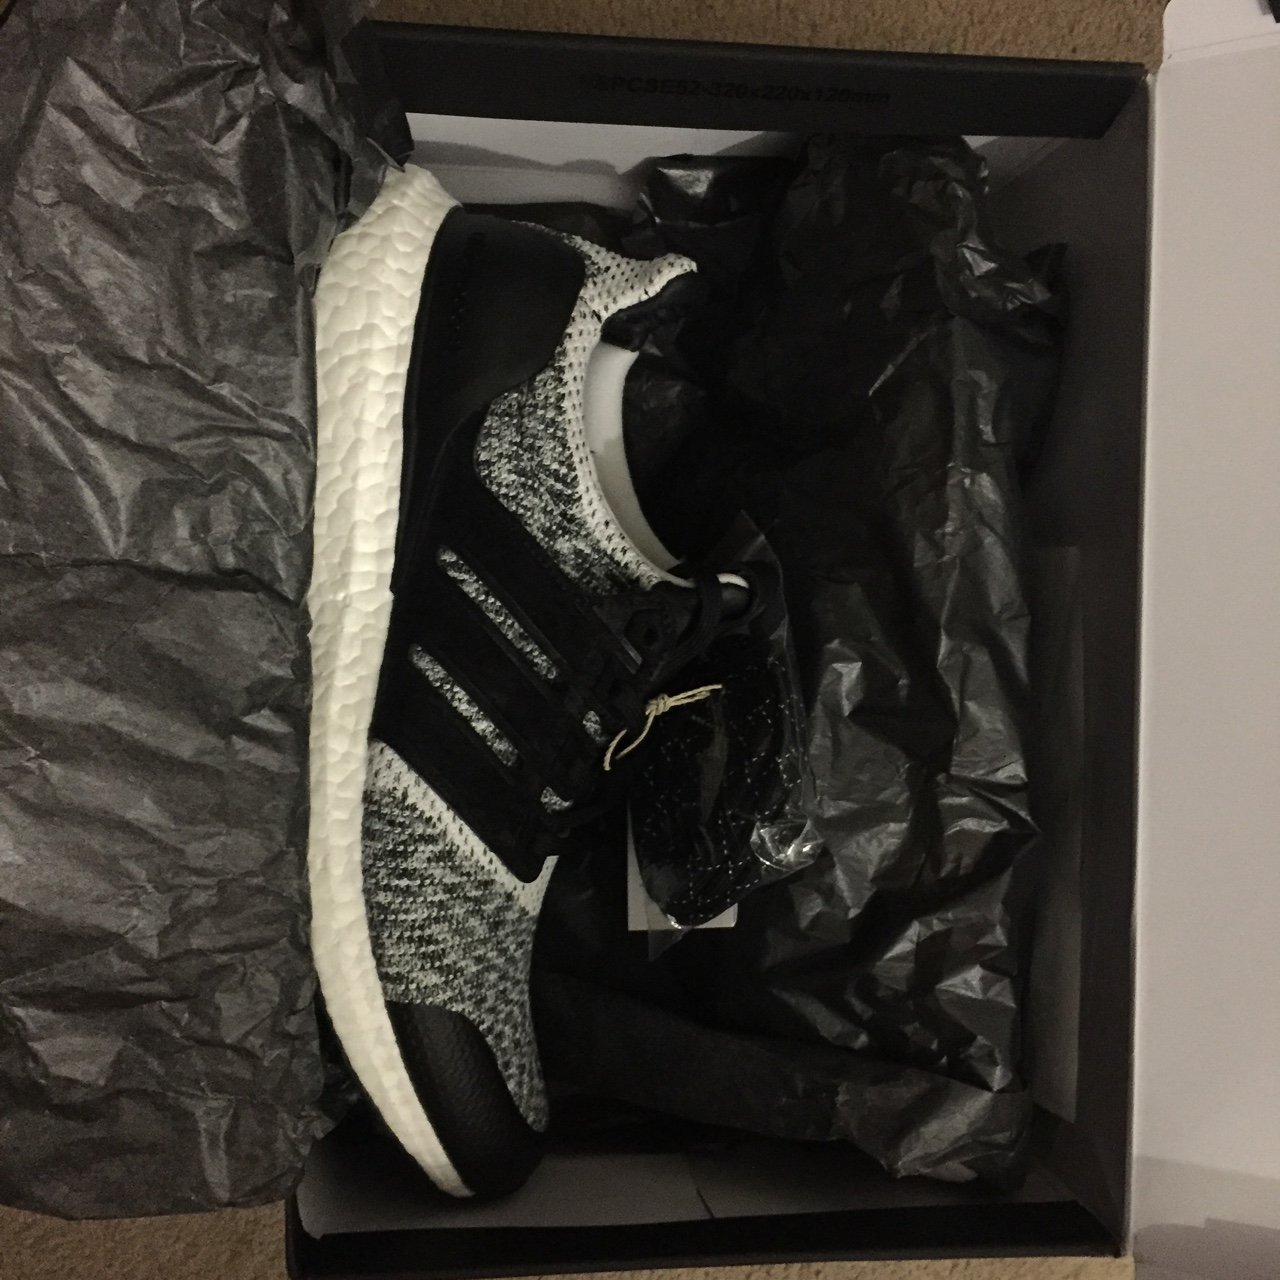 N Boost Adidas Tags Ultra Social Stuff Depop With And New Sneakers OPulwkXiTZ